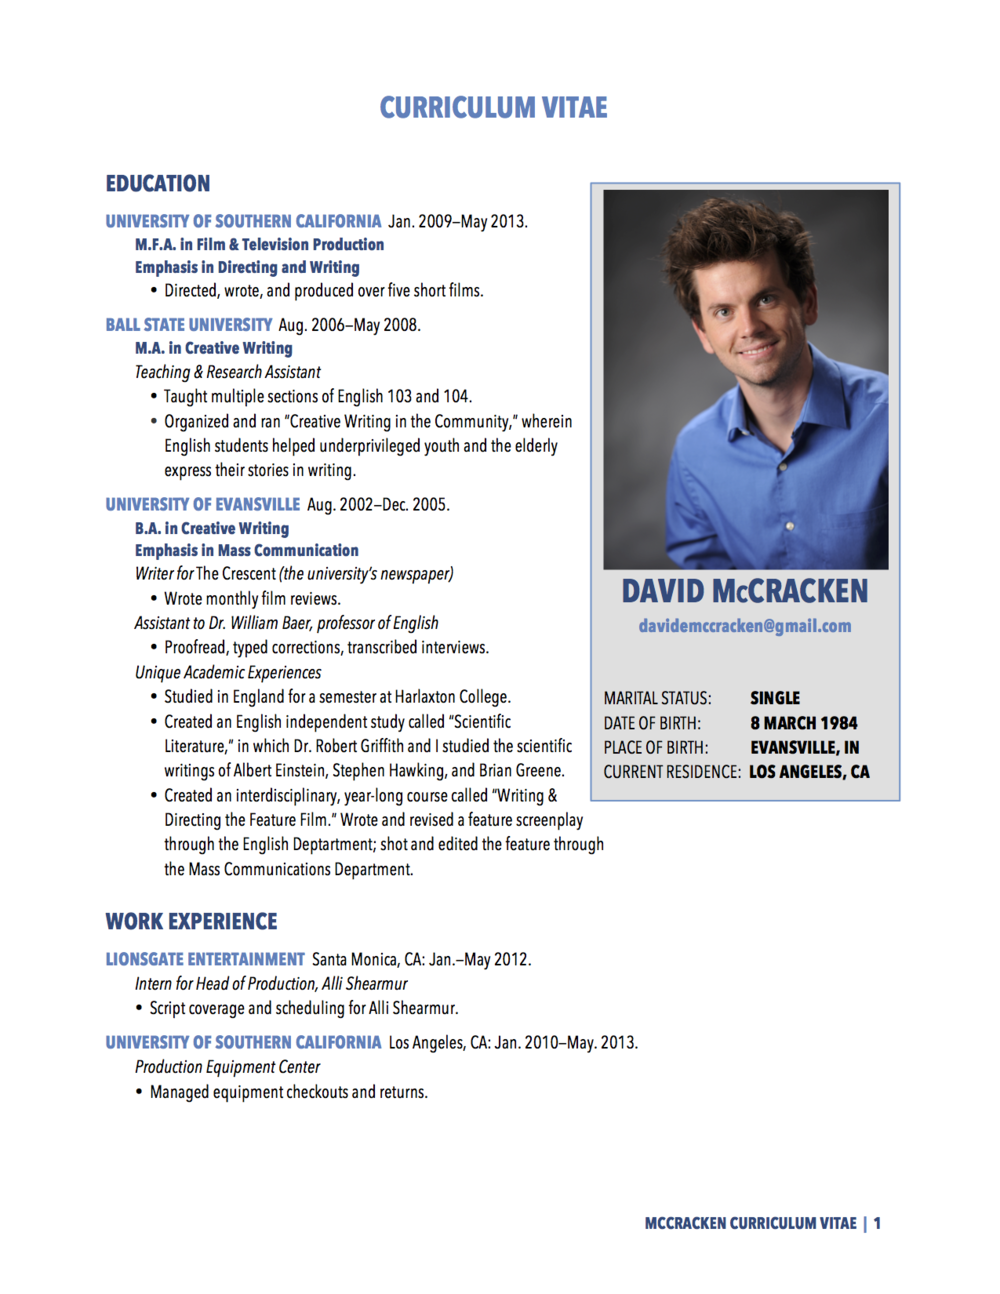 curriculum vitae david mccracken davidmccracken c v 01 03 2014 for website pg1 png